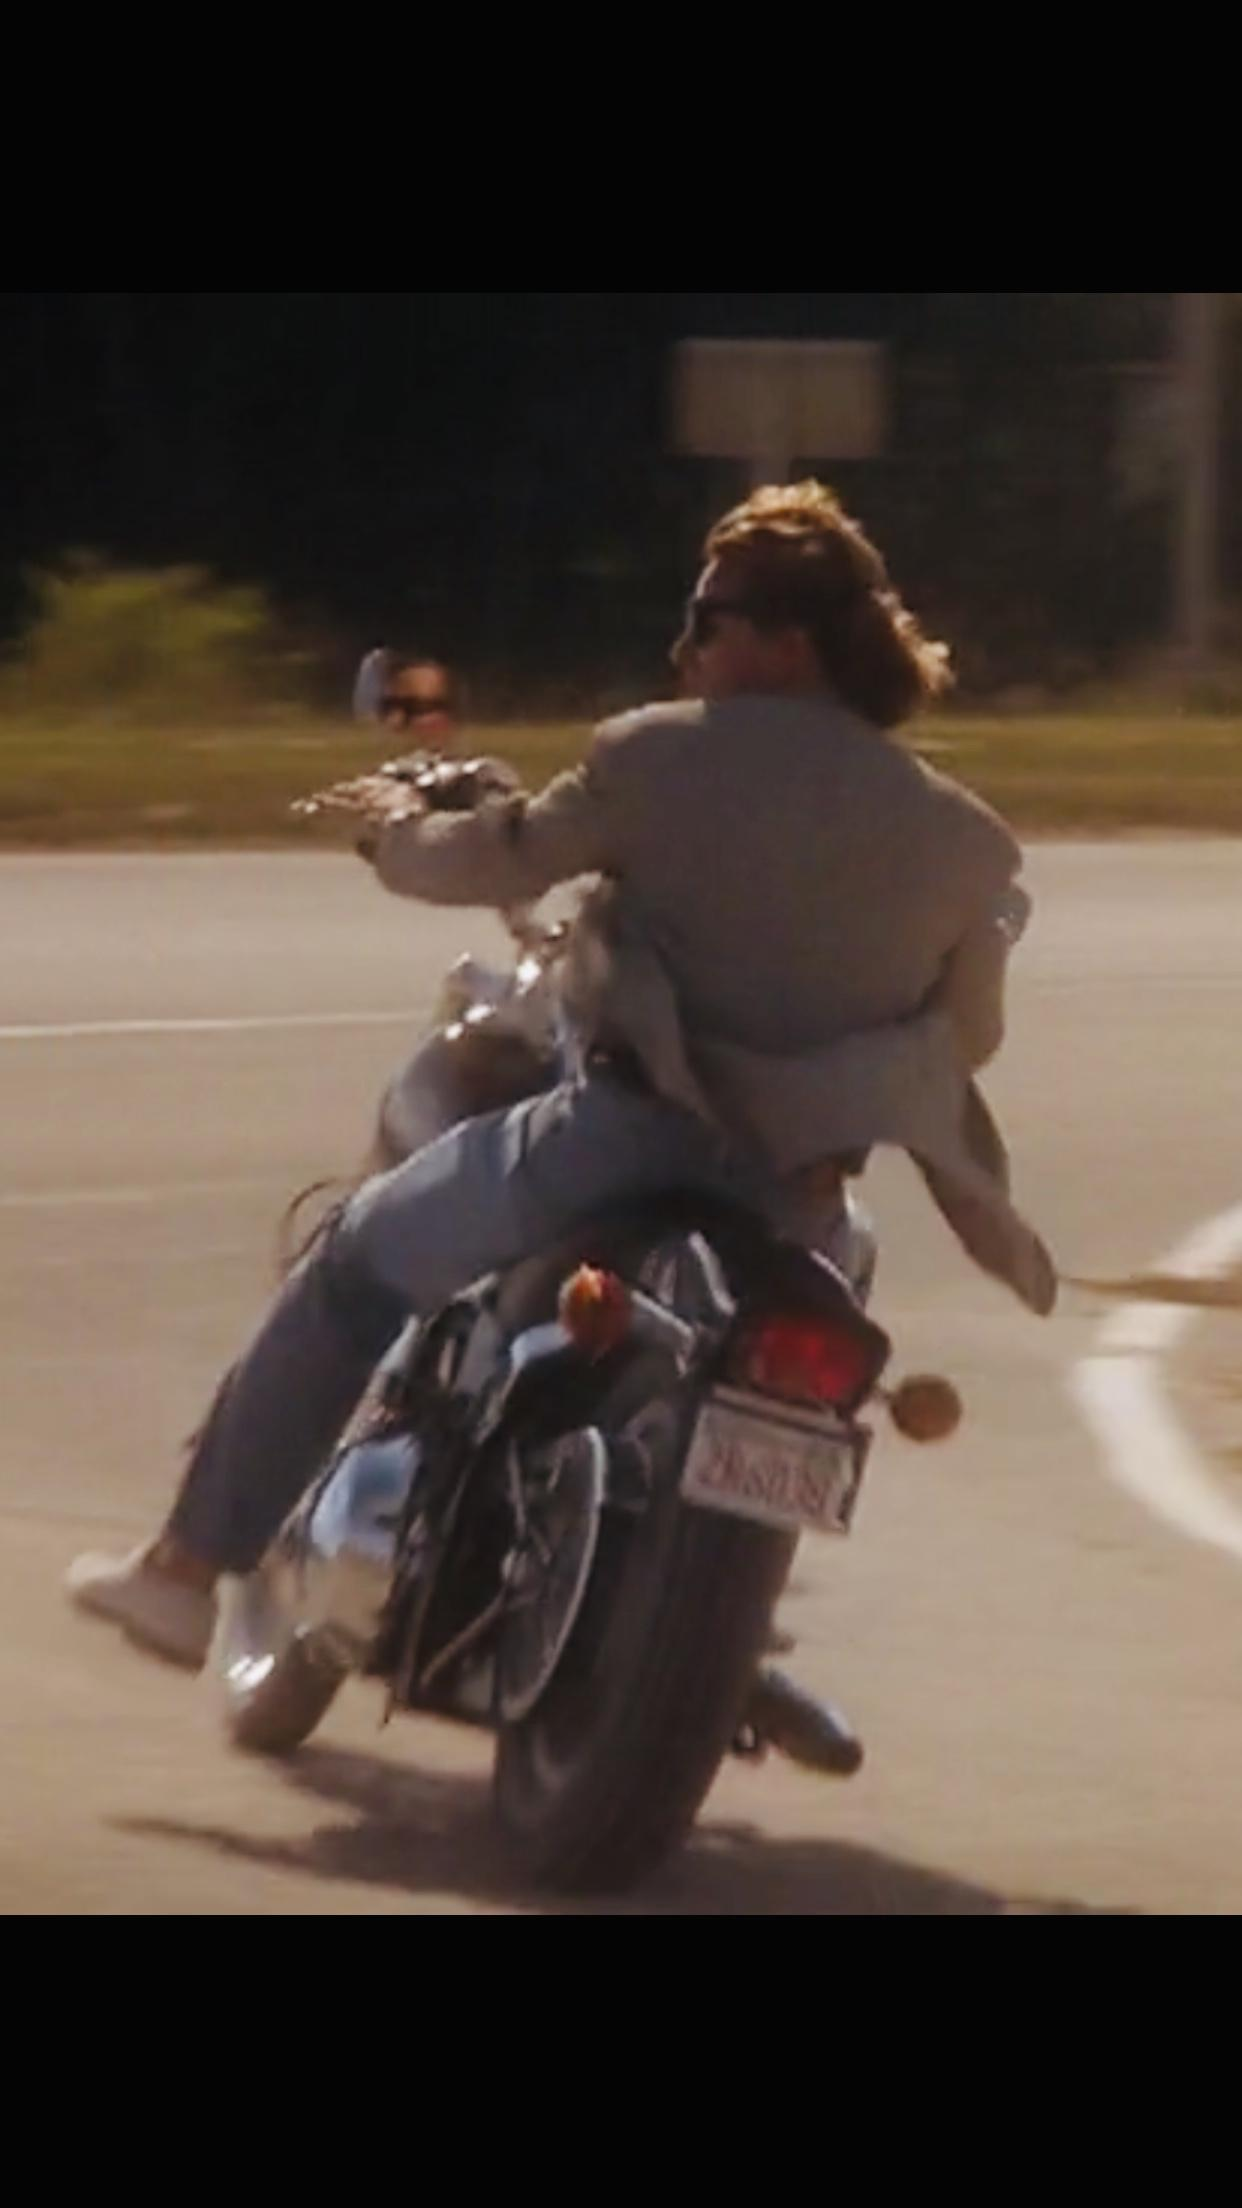 If Crockett rode a motorcycle? - General - The Miami Vice Community